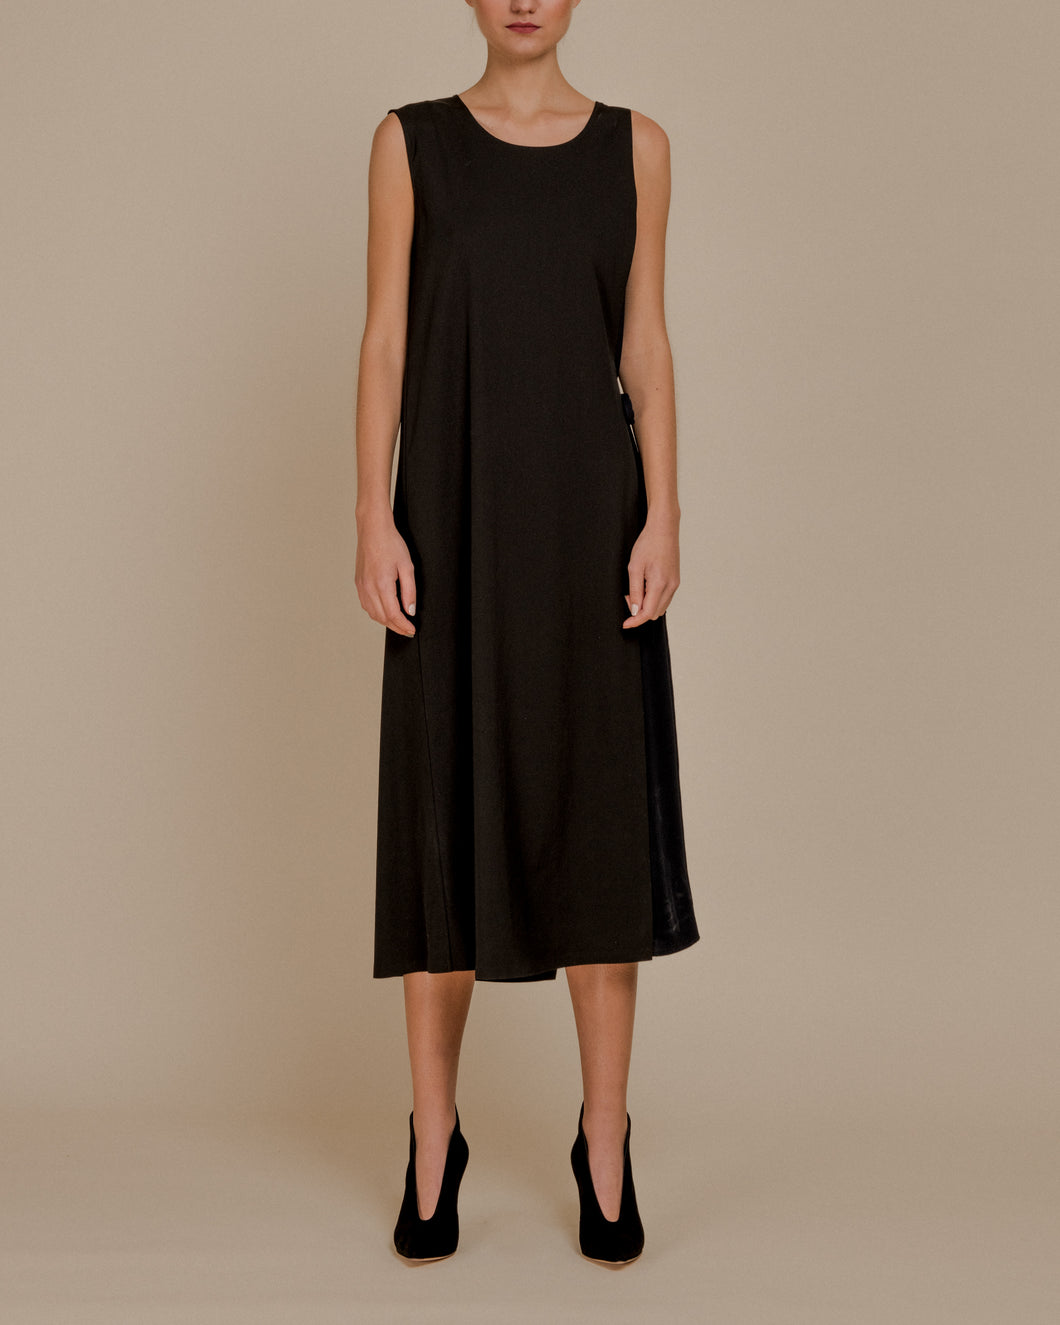 Maison Margiela Side Tie Dress